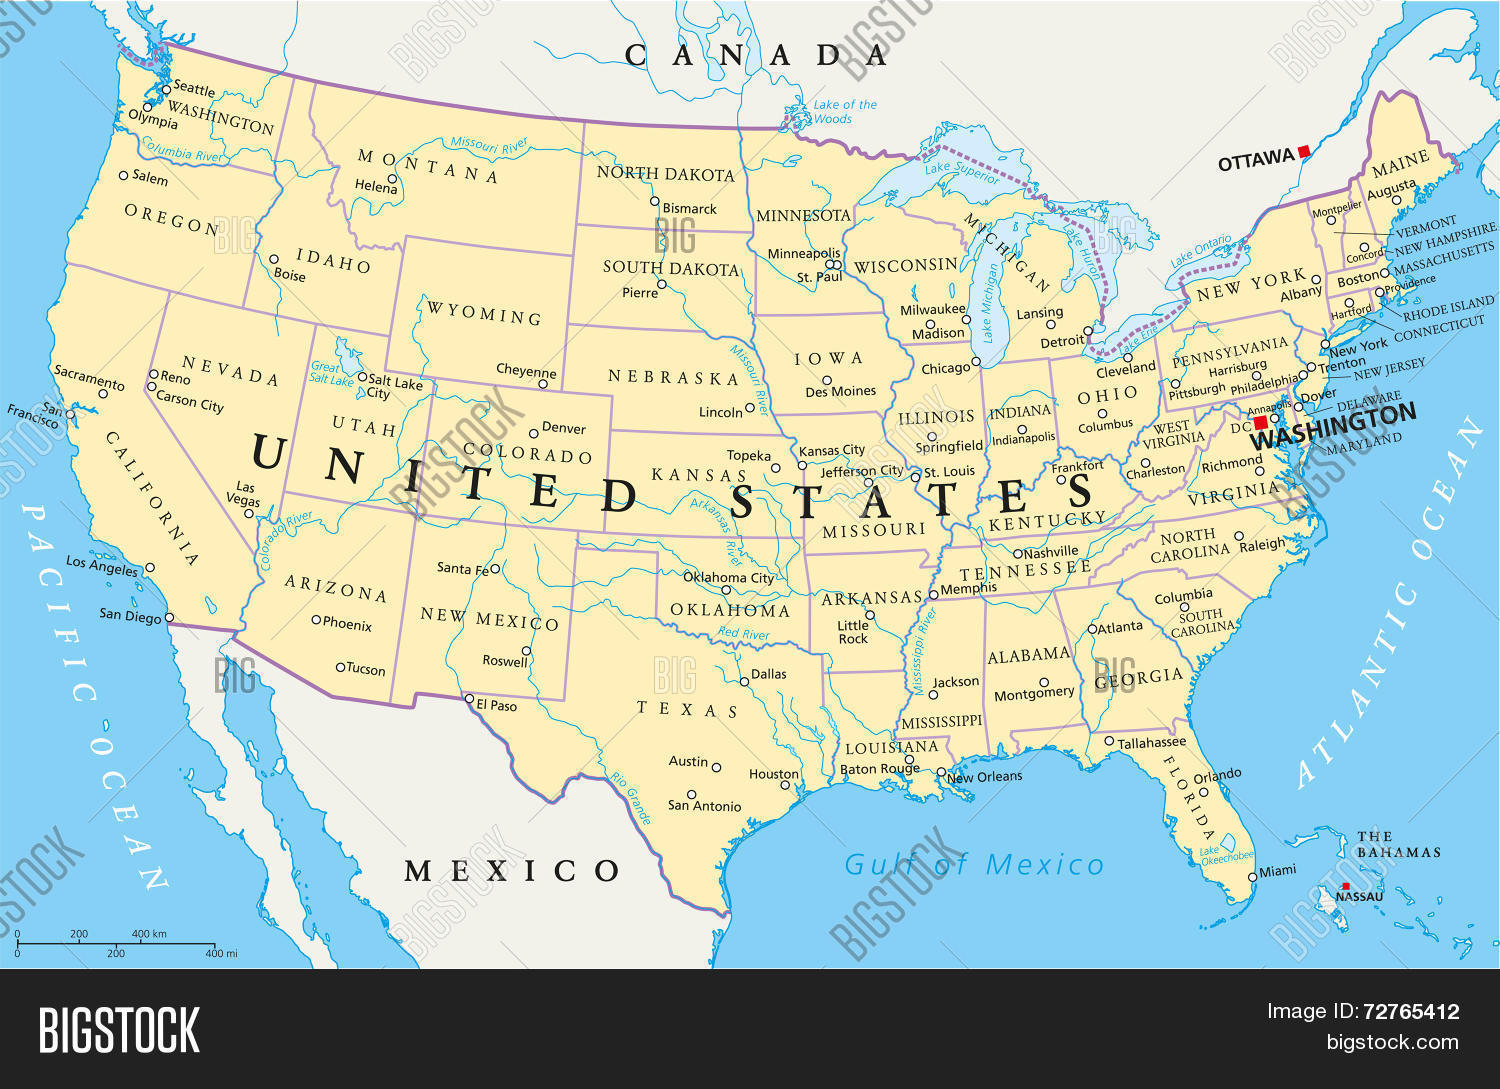 🔥 United States of America Political Map - 72765412 image ...